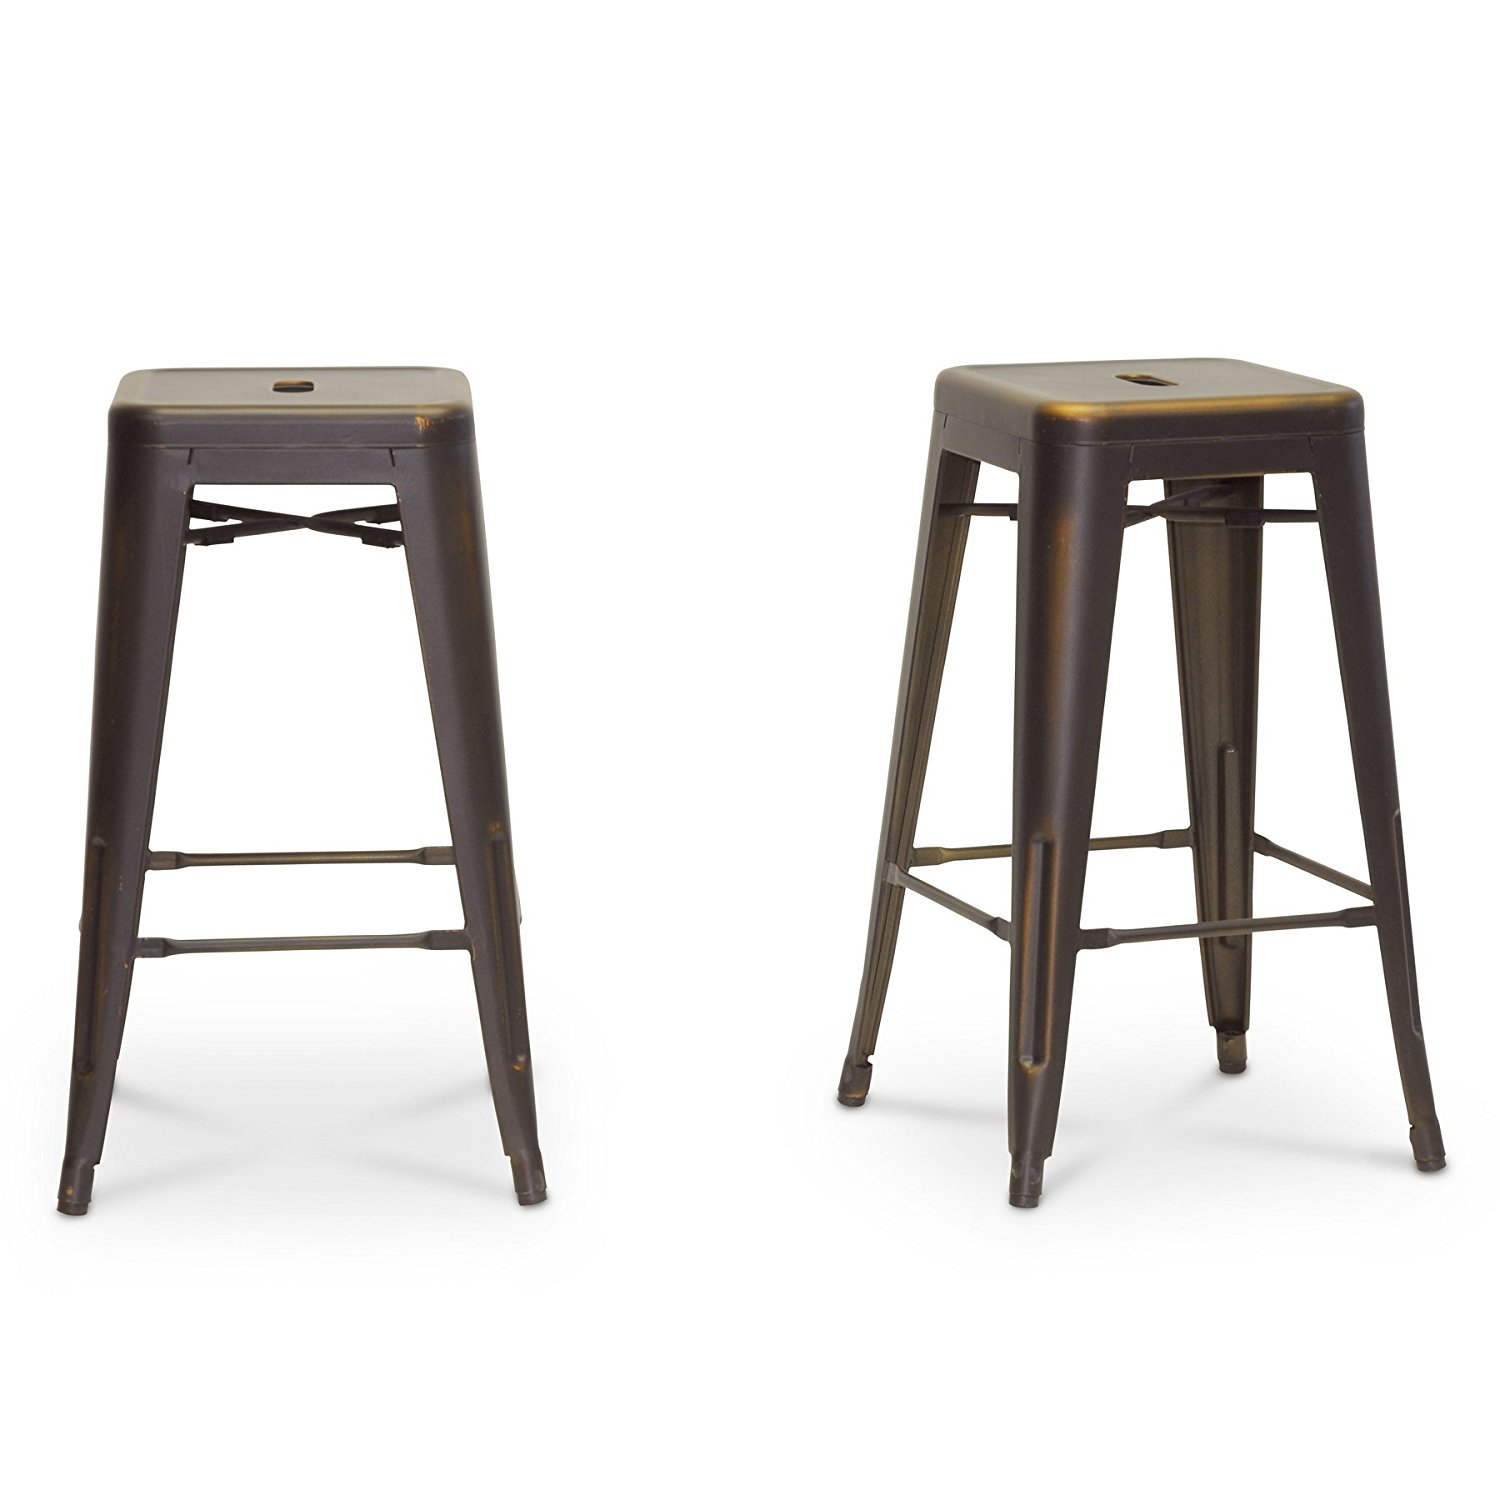 Baxton Studio French Industrial Modern Counter Stool, Antique Copper, Set of 2